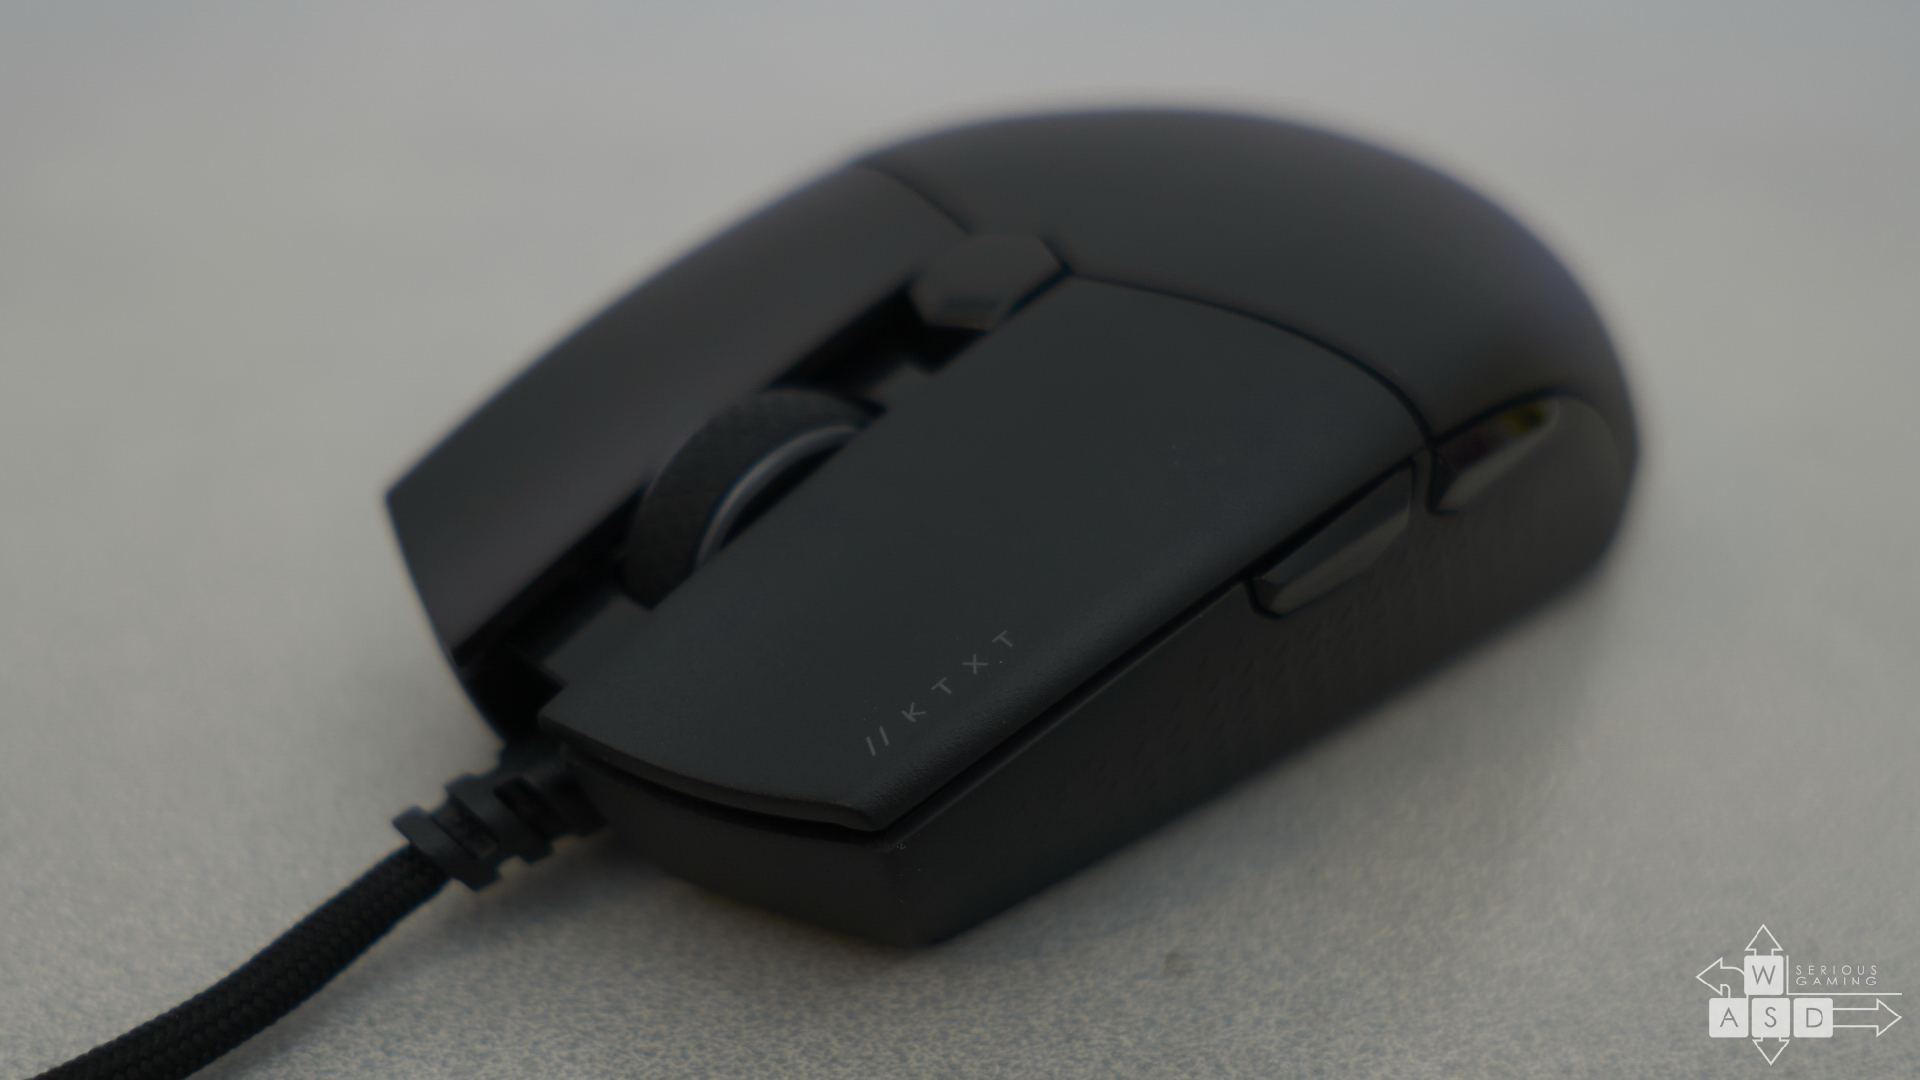 Corsair Katar Pro XT review | WASD